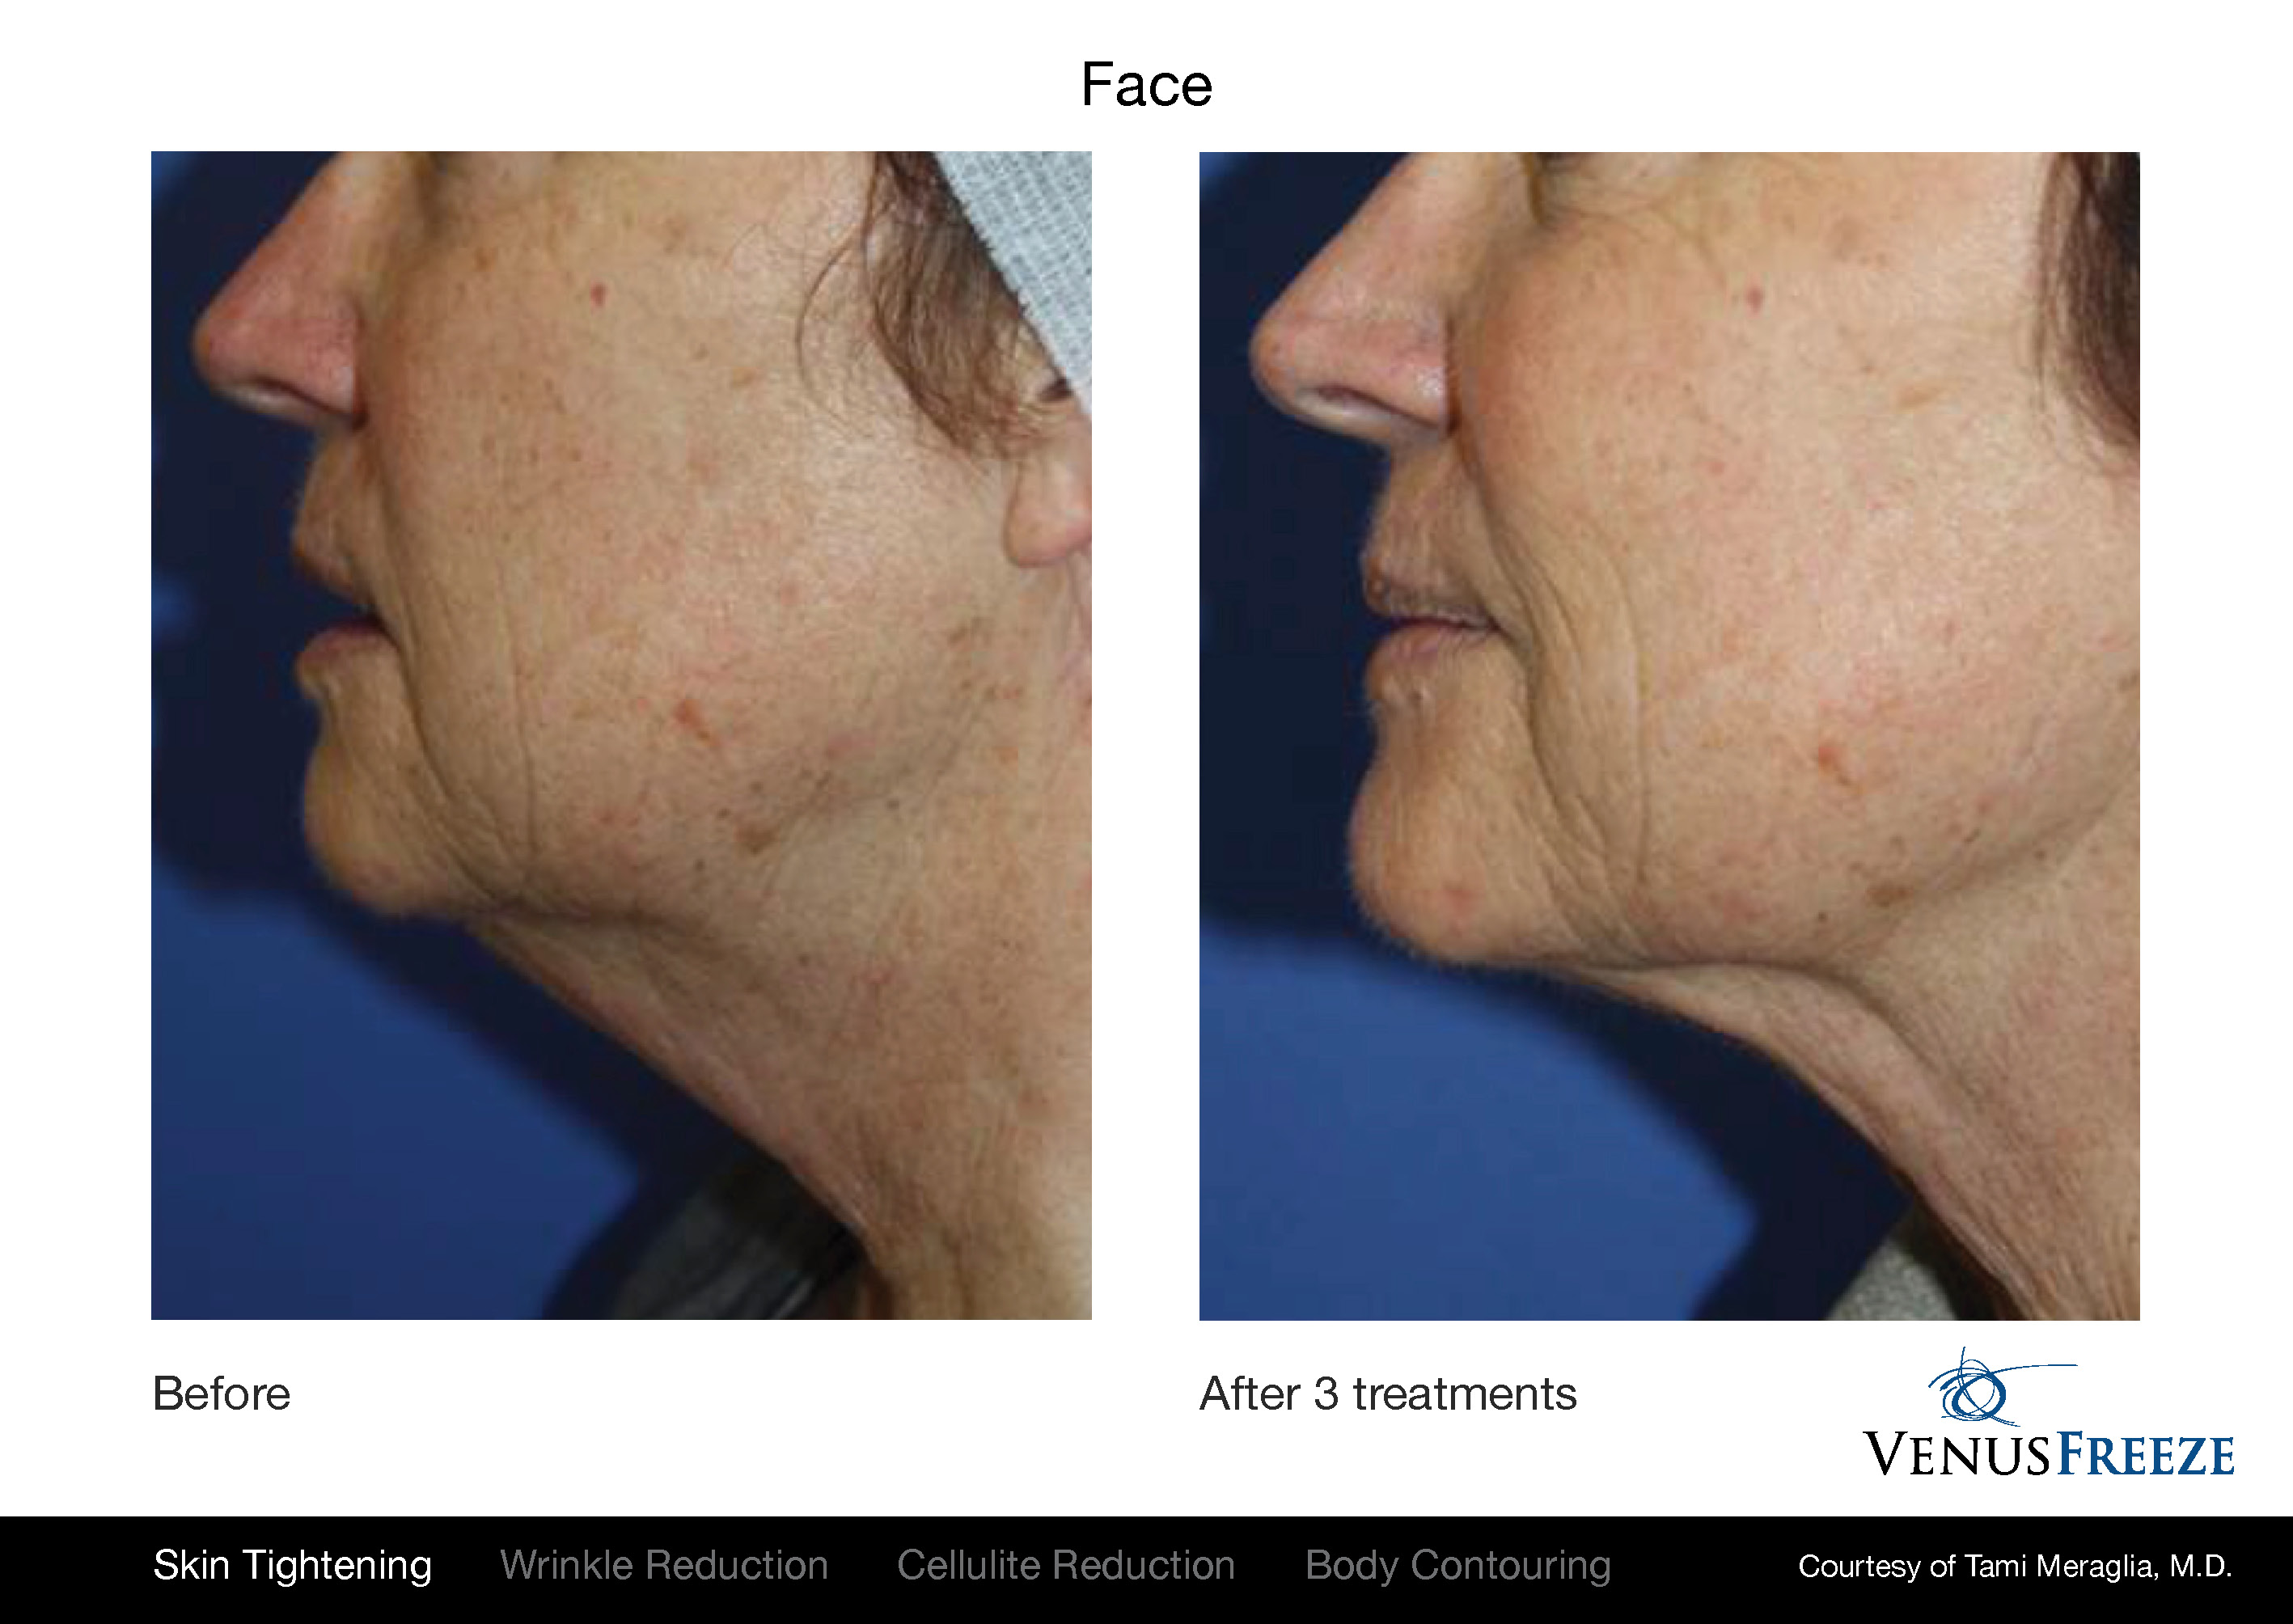 Venus Freeze before and after results on face, neck, and chin.